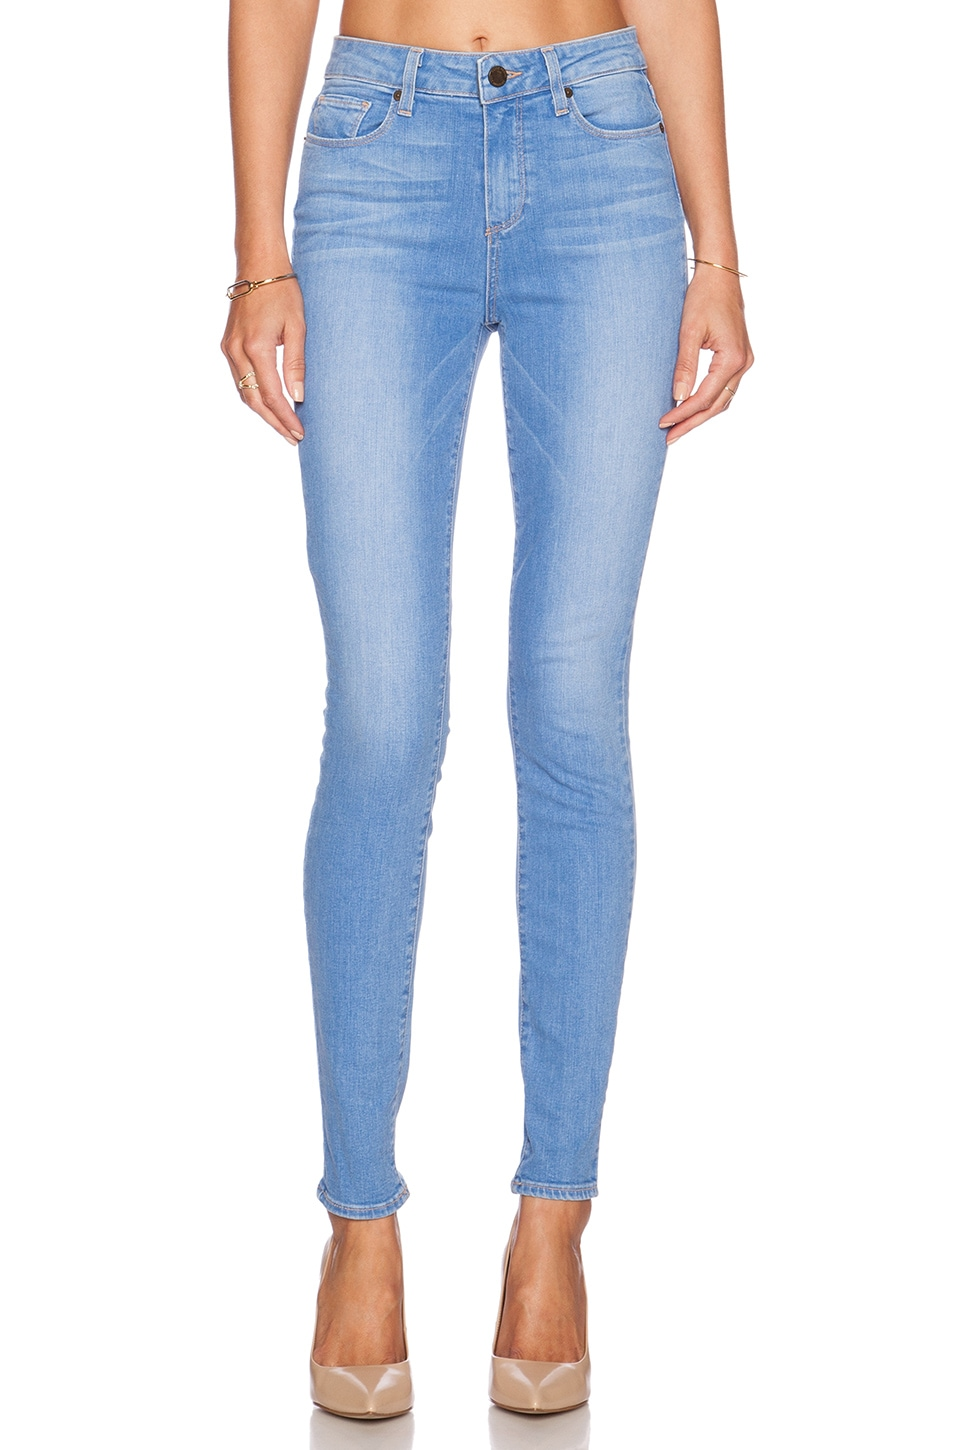 PAIGE Hoxton Ultra Skinny in Meliah